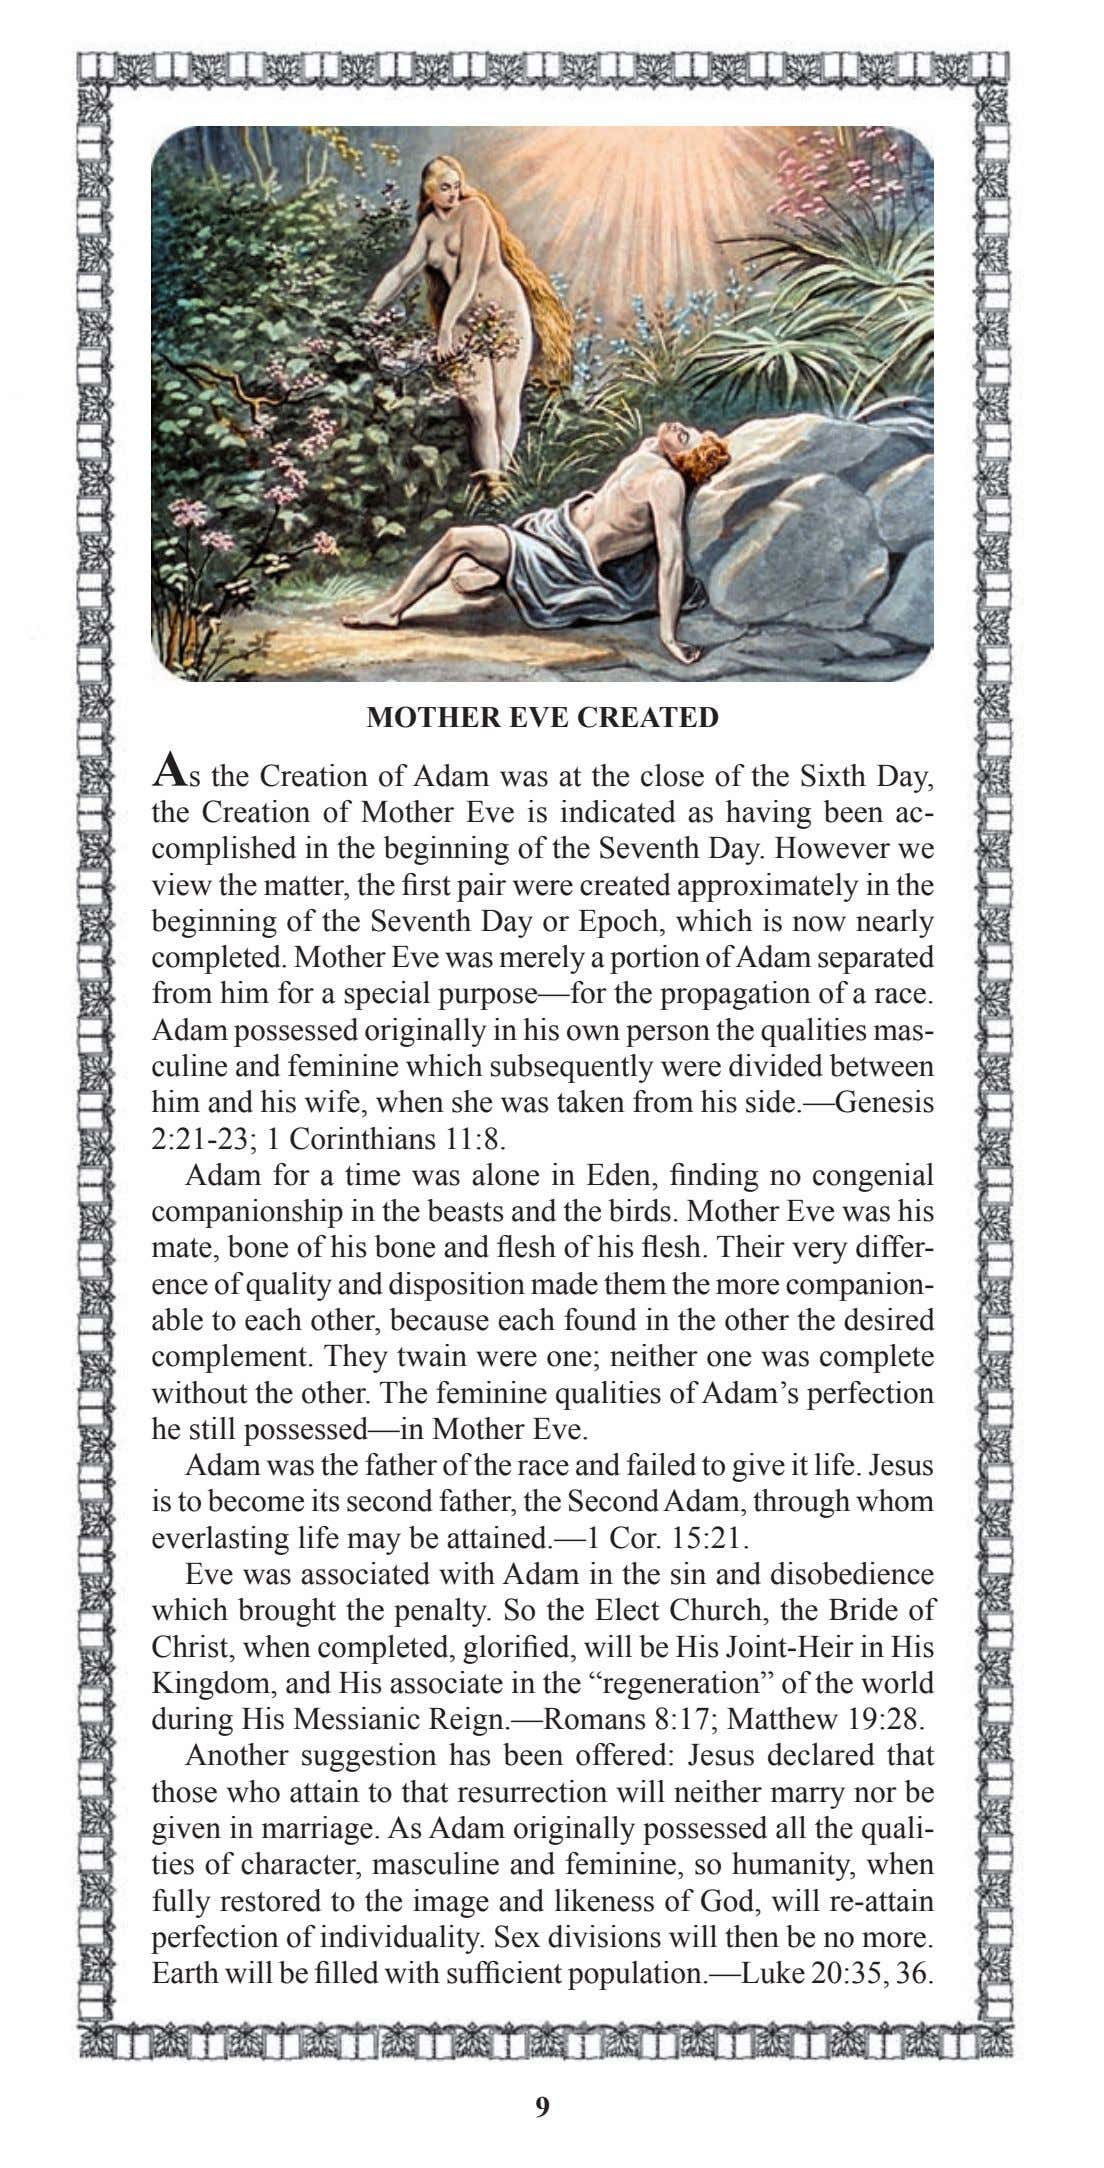 MOTHER EVE CREATED As the Creation of Adam was at the close of the Sixth